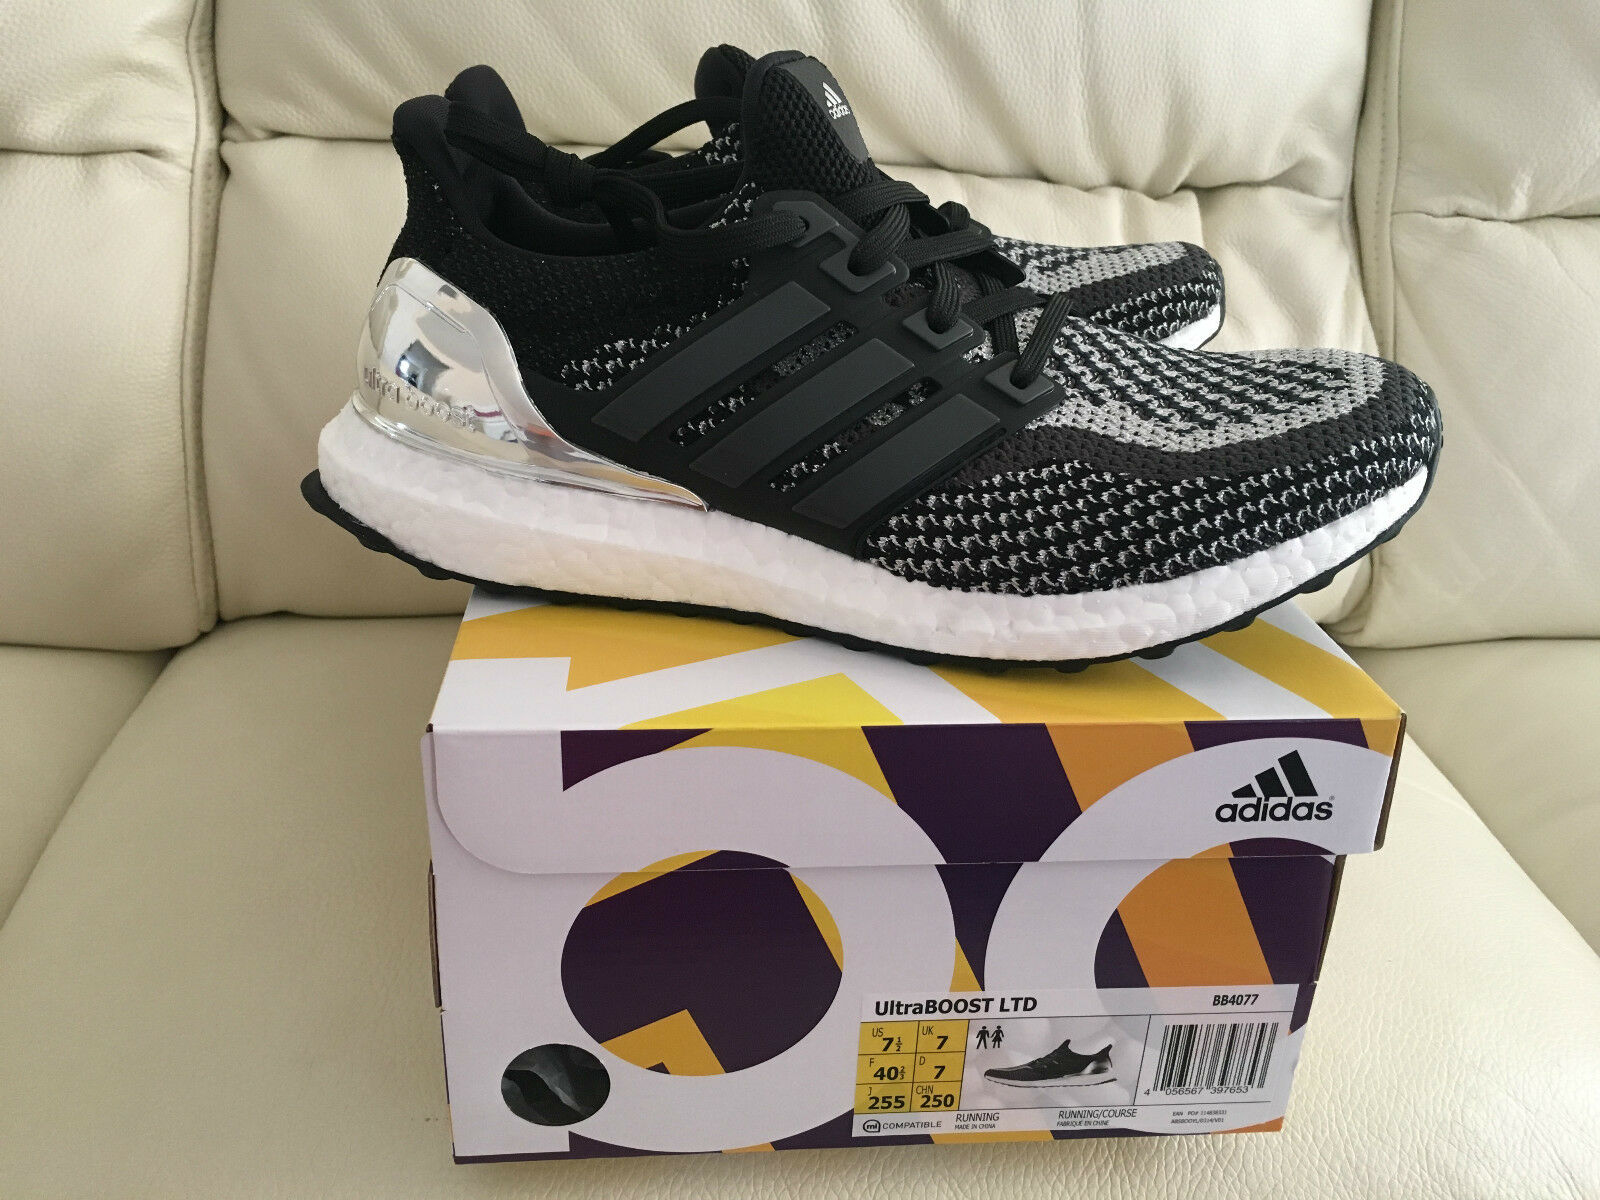 ADIDAS ULTRABOOST ULTRA BOOST SILVER OLYMPIC PACK SIZE UK 11.5 NEW